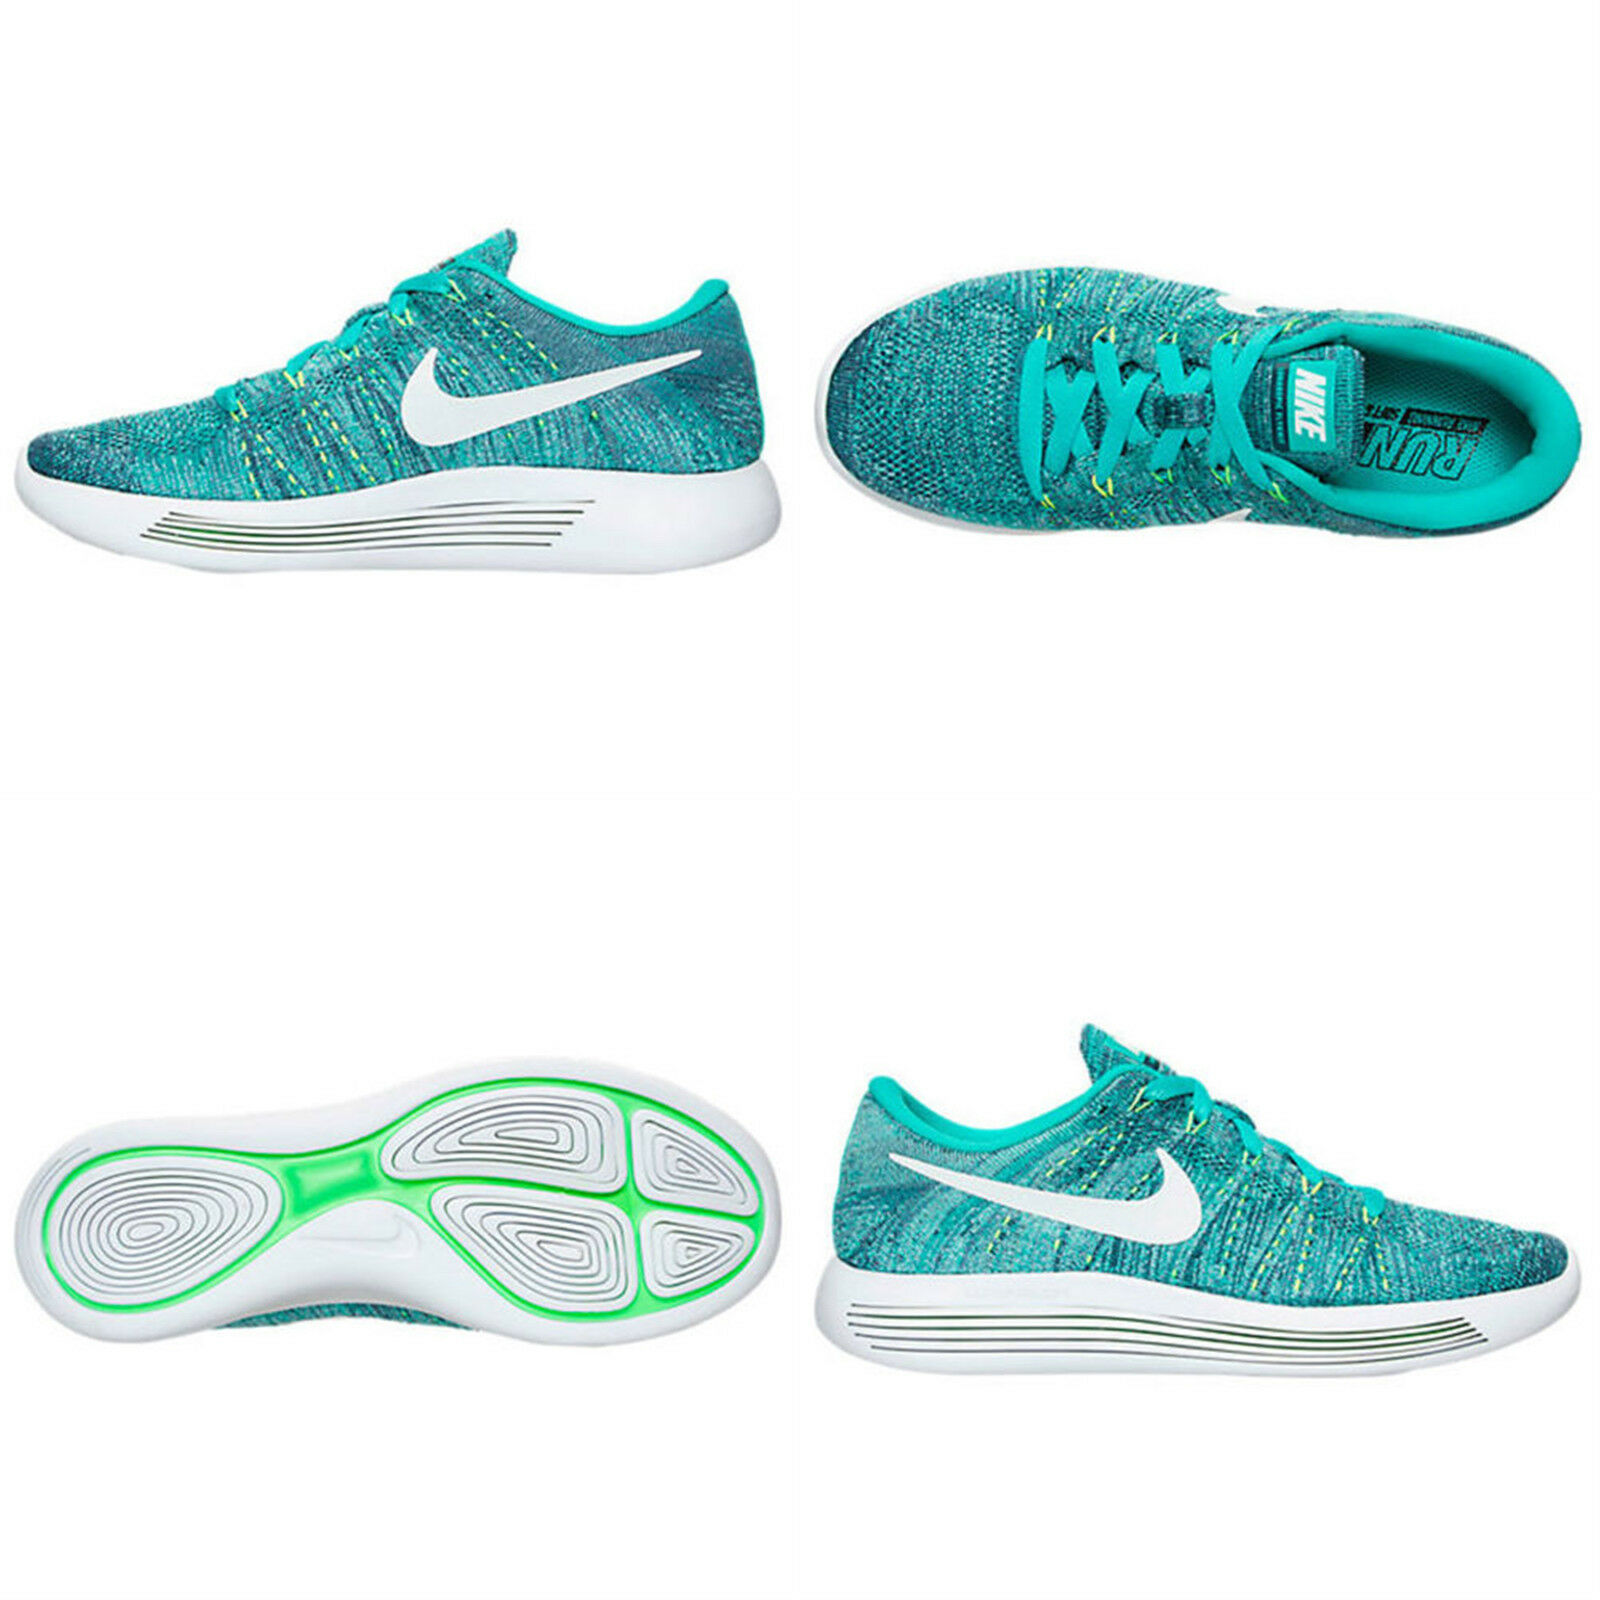 Women's NIKE LUNAREPIC LOW FLYKNIT (863779-301),RUNNING/CASUAl Shoe.NEW WITH BOX